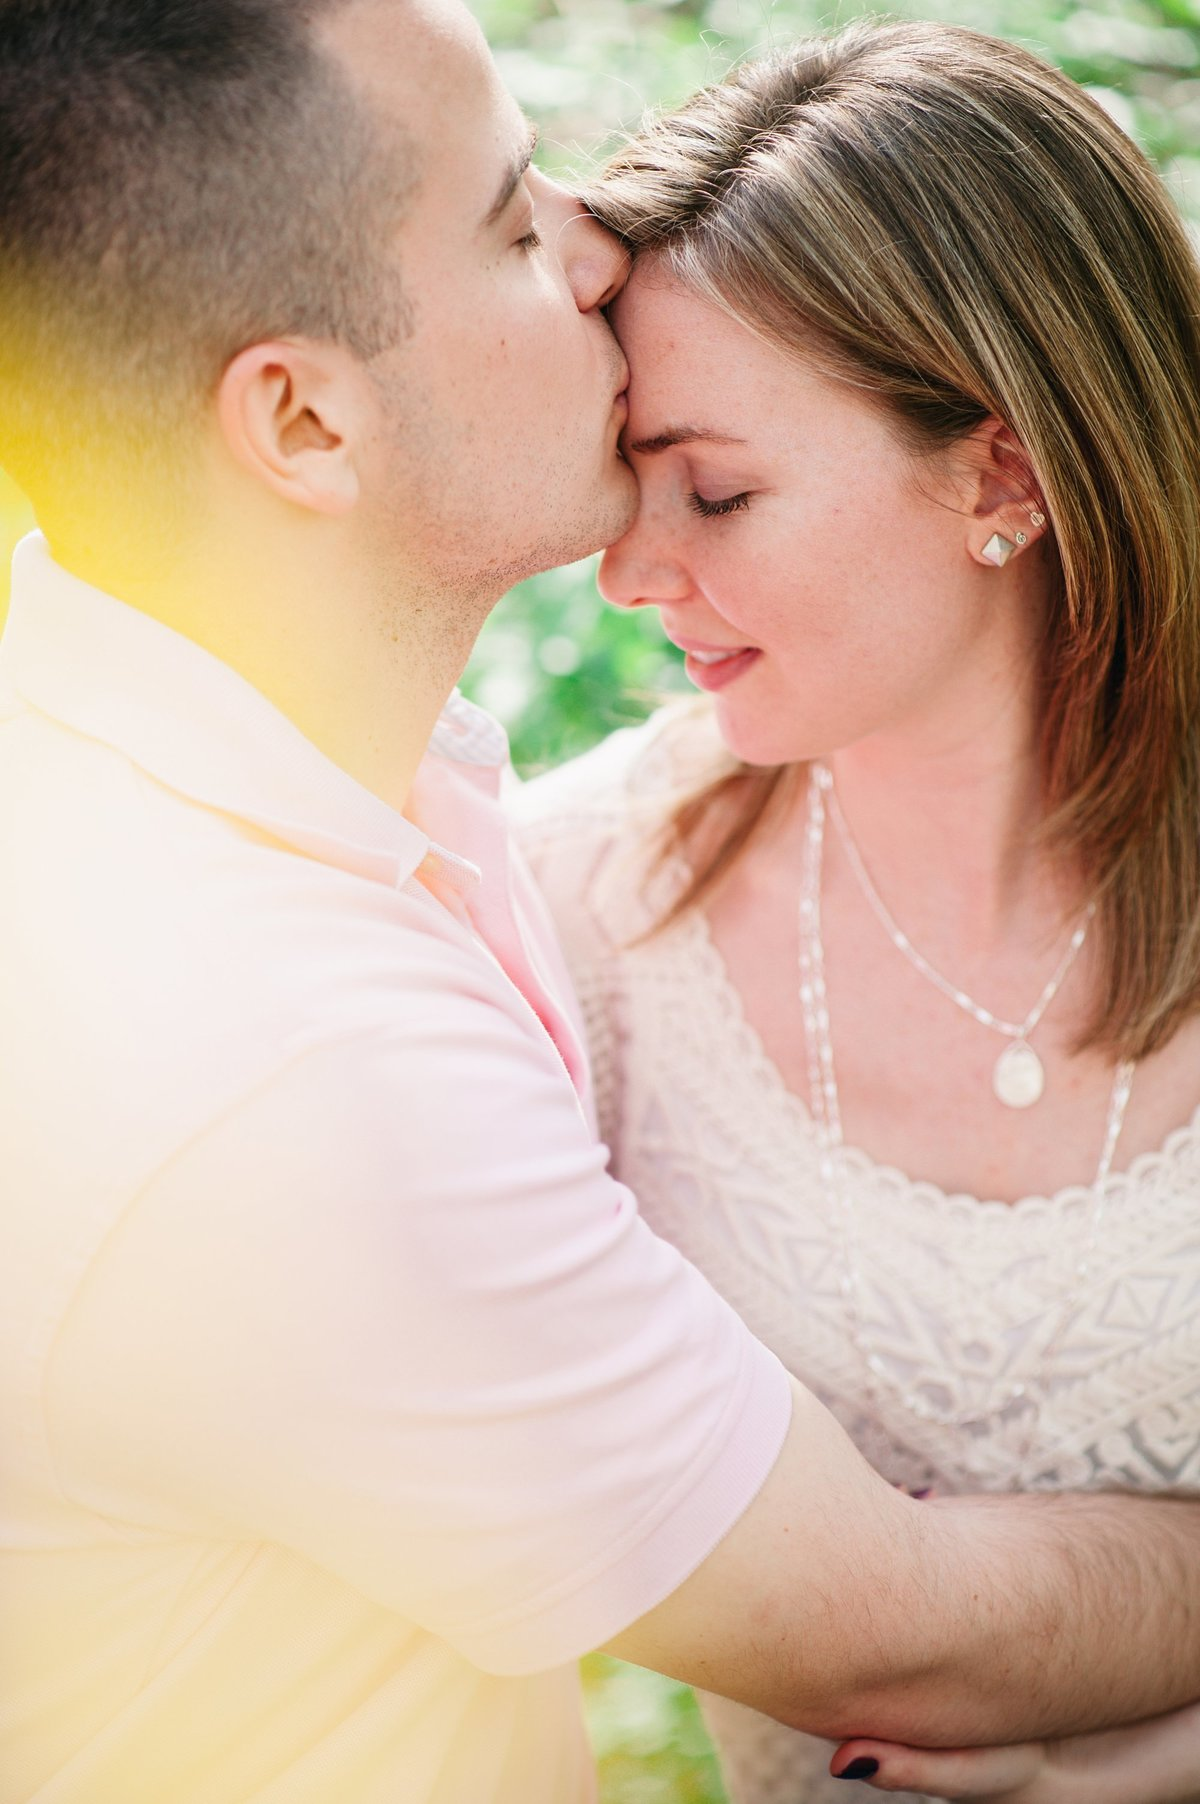 spring engagement session in woods glen echo park